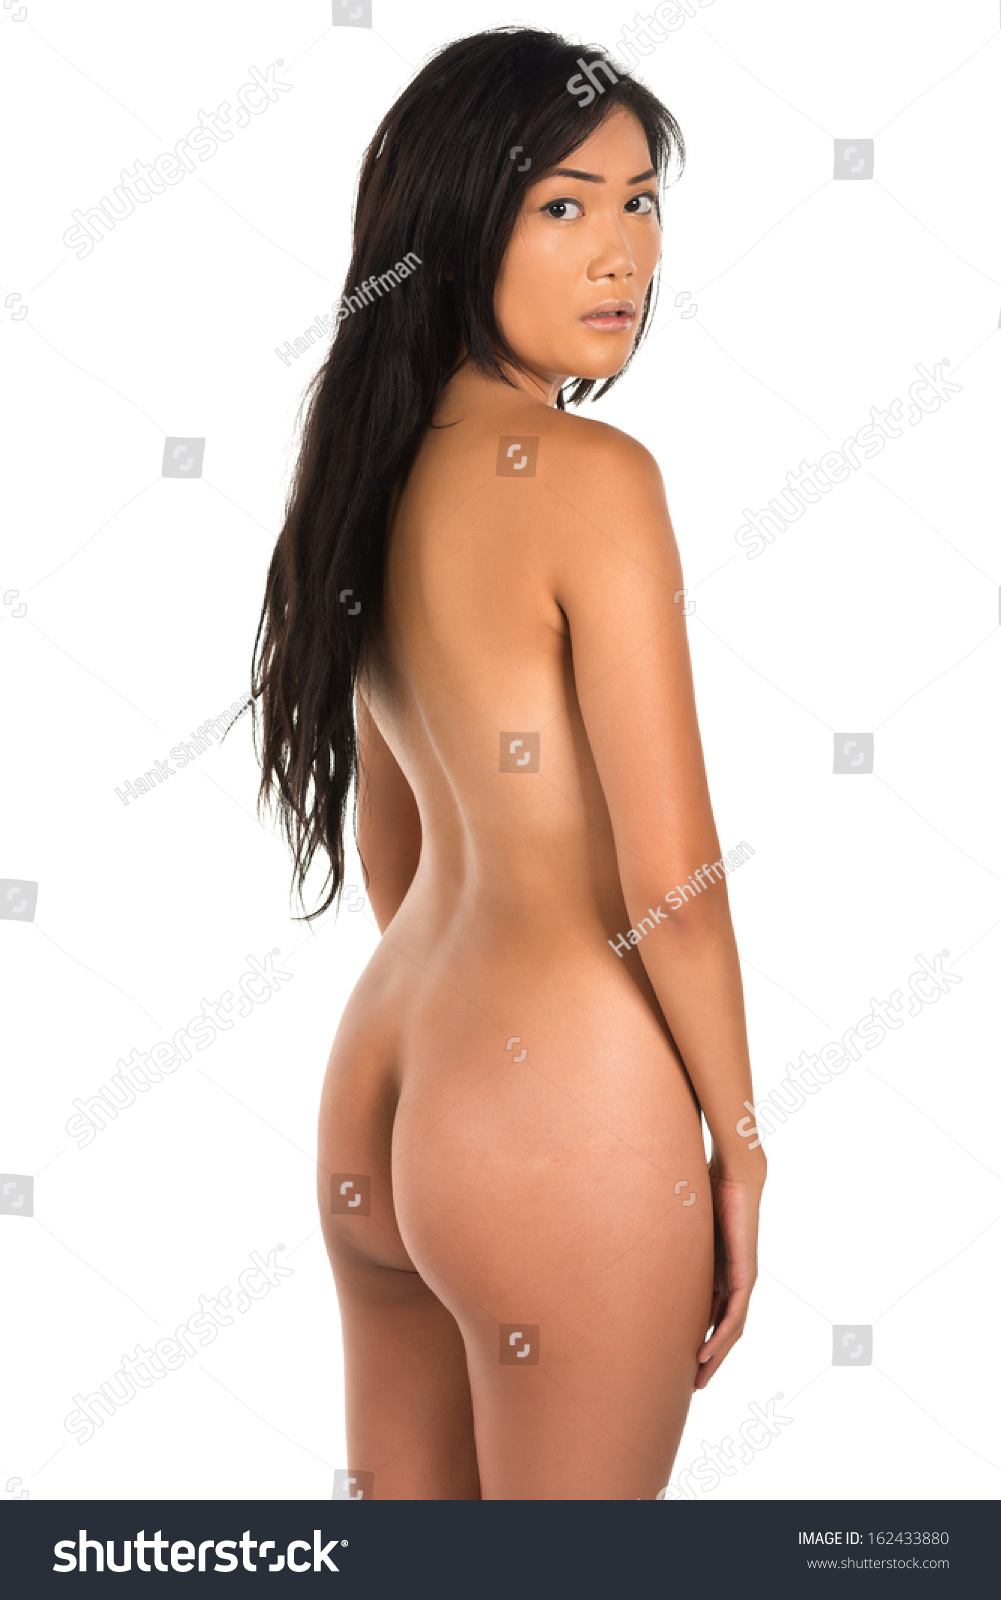 perfect body nude woman